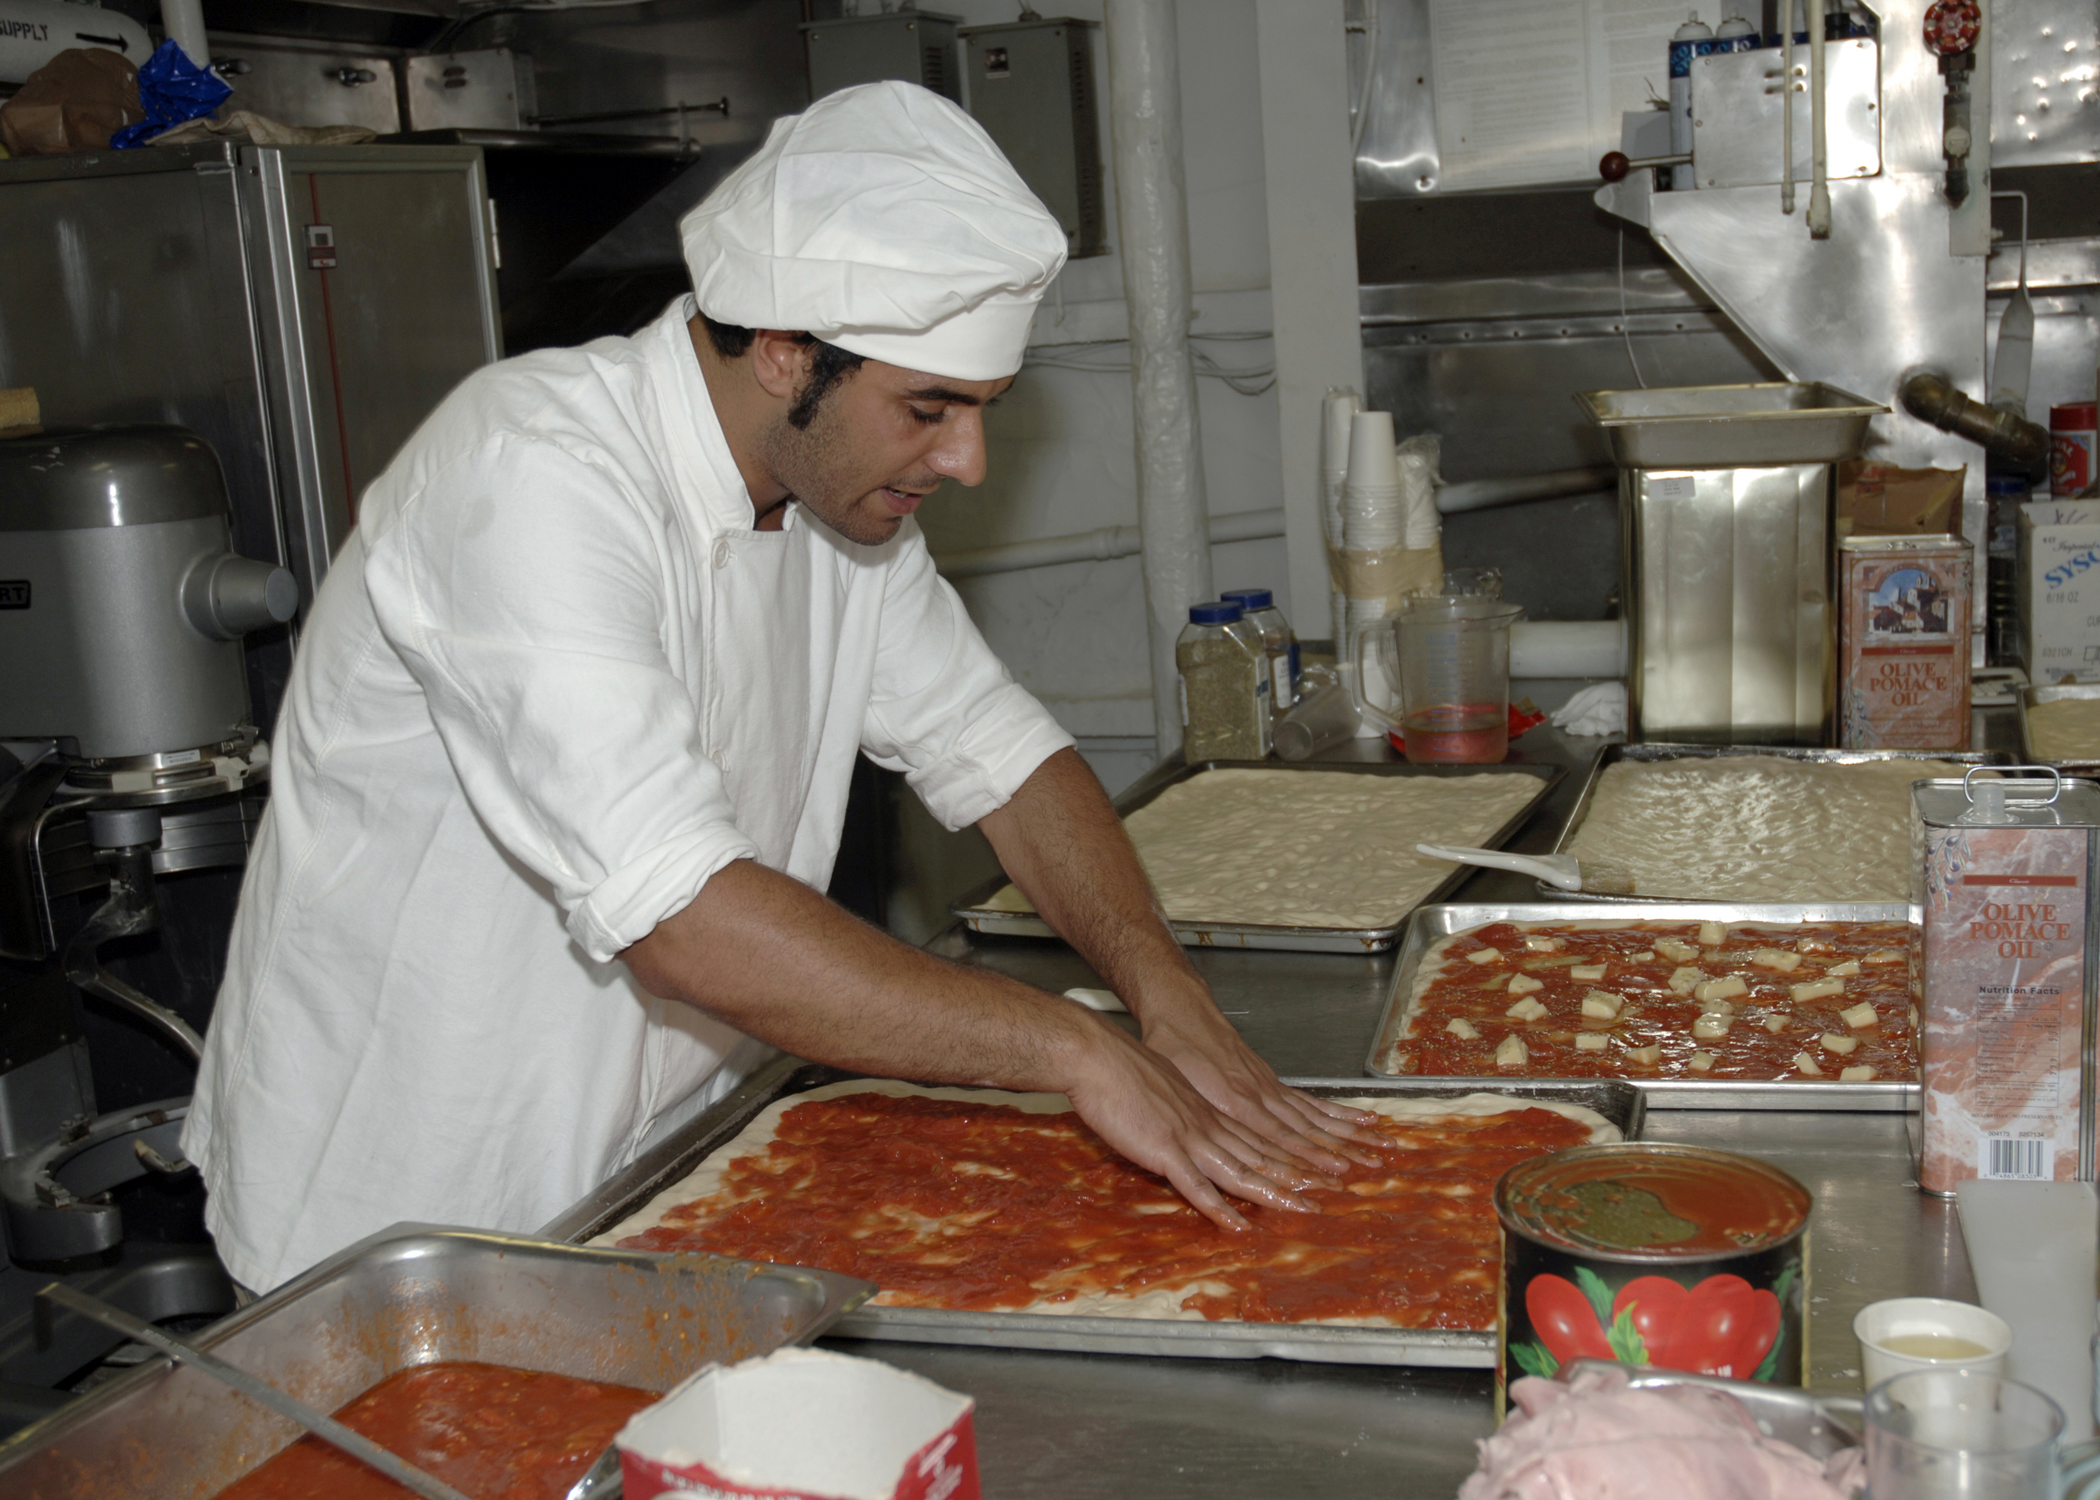 File:US Navy 050629-N-6616W-003 An Italian cook assigned to the ...